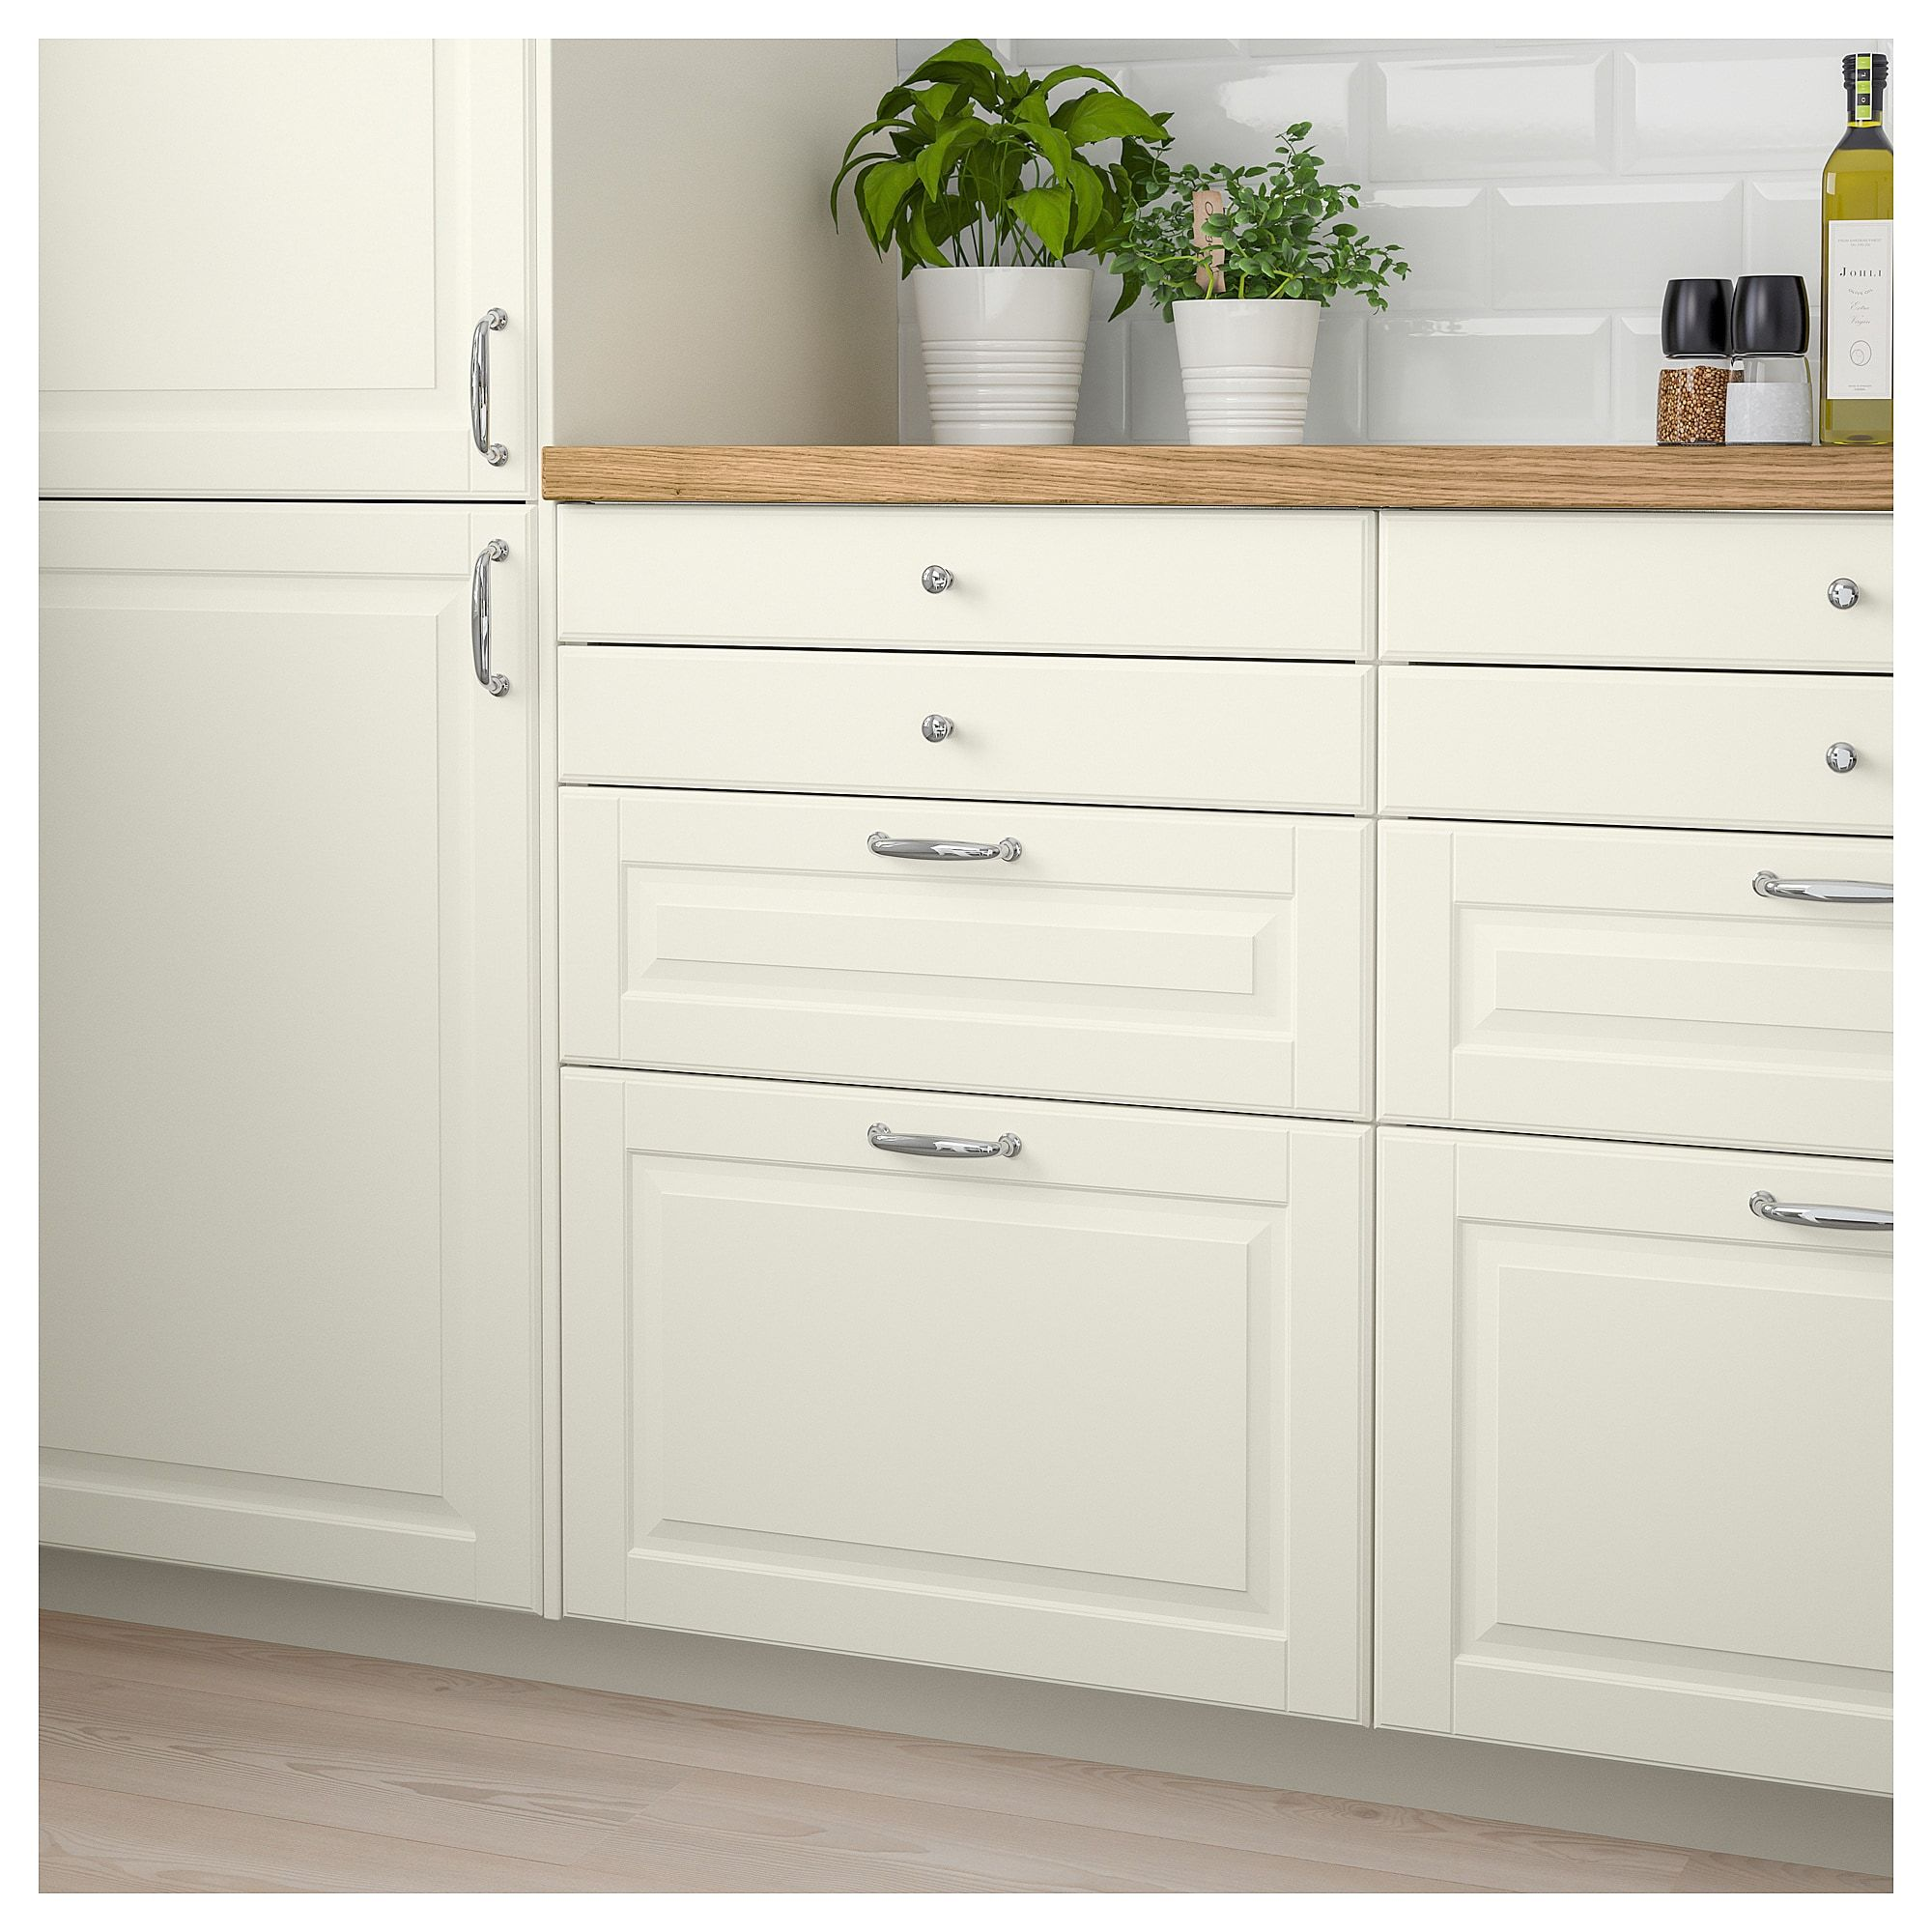 Ikea Küche Metod Tingsryd Image Result For Ikea Bodbyn Kuchyn V Roce 2019 Drawer Fronts